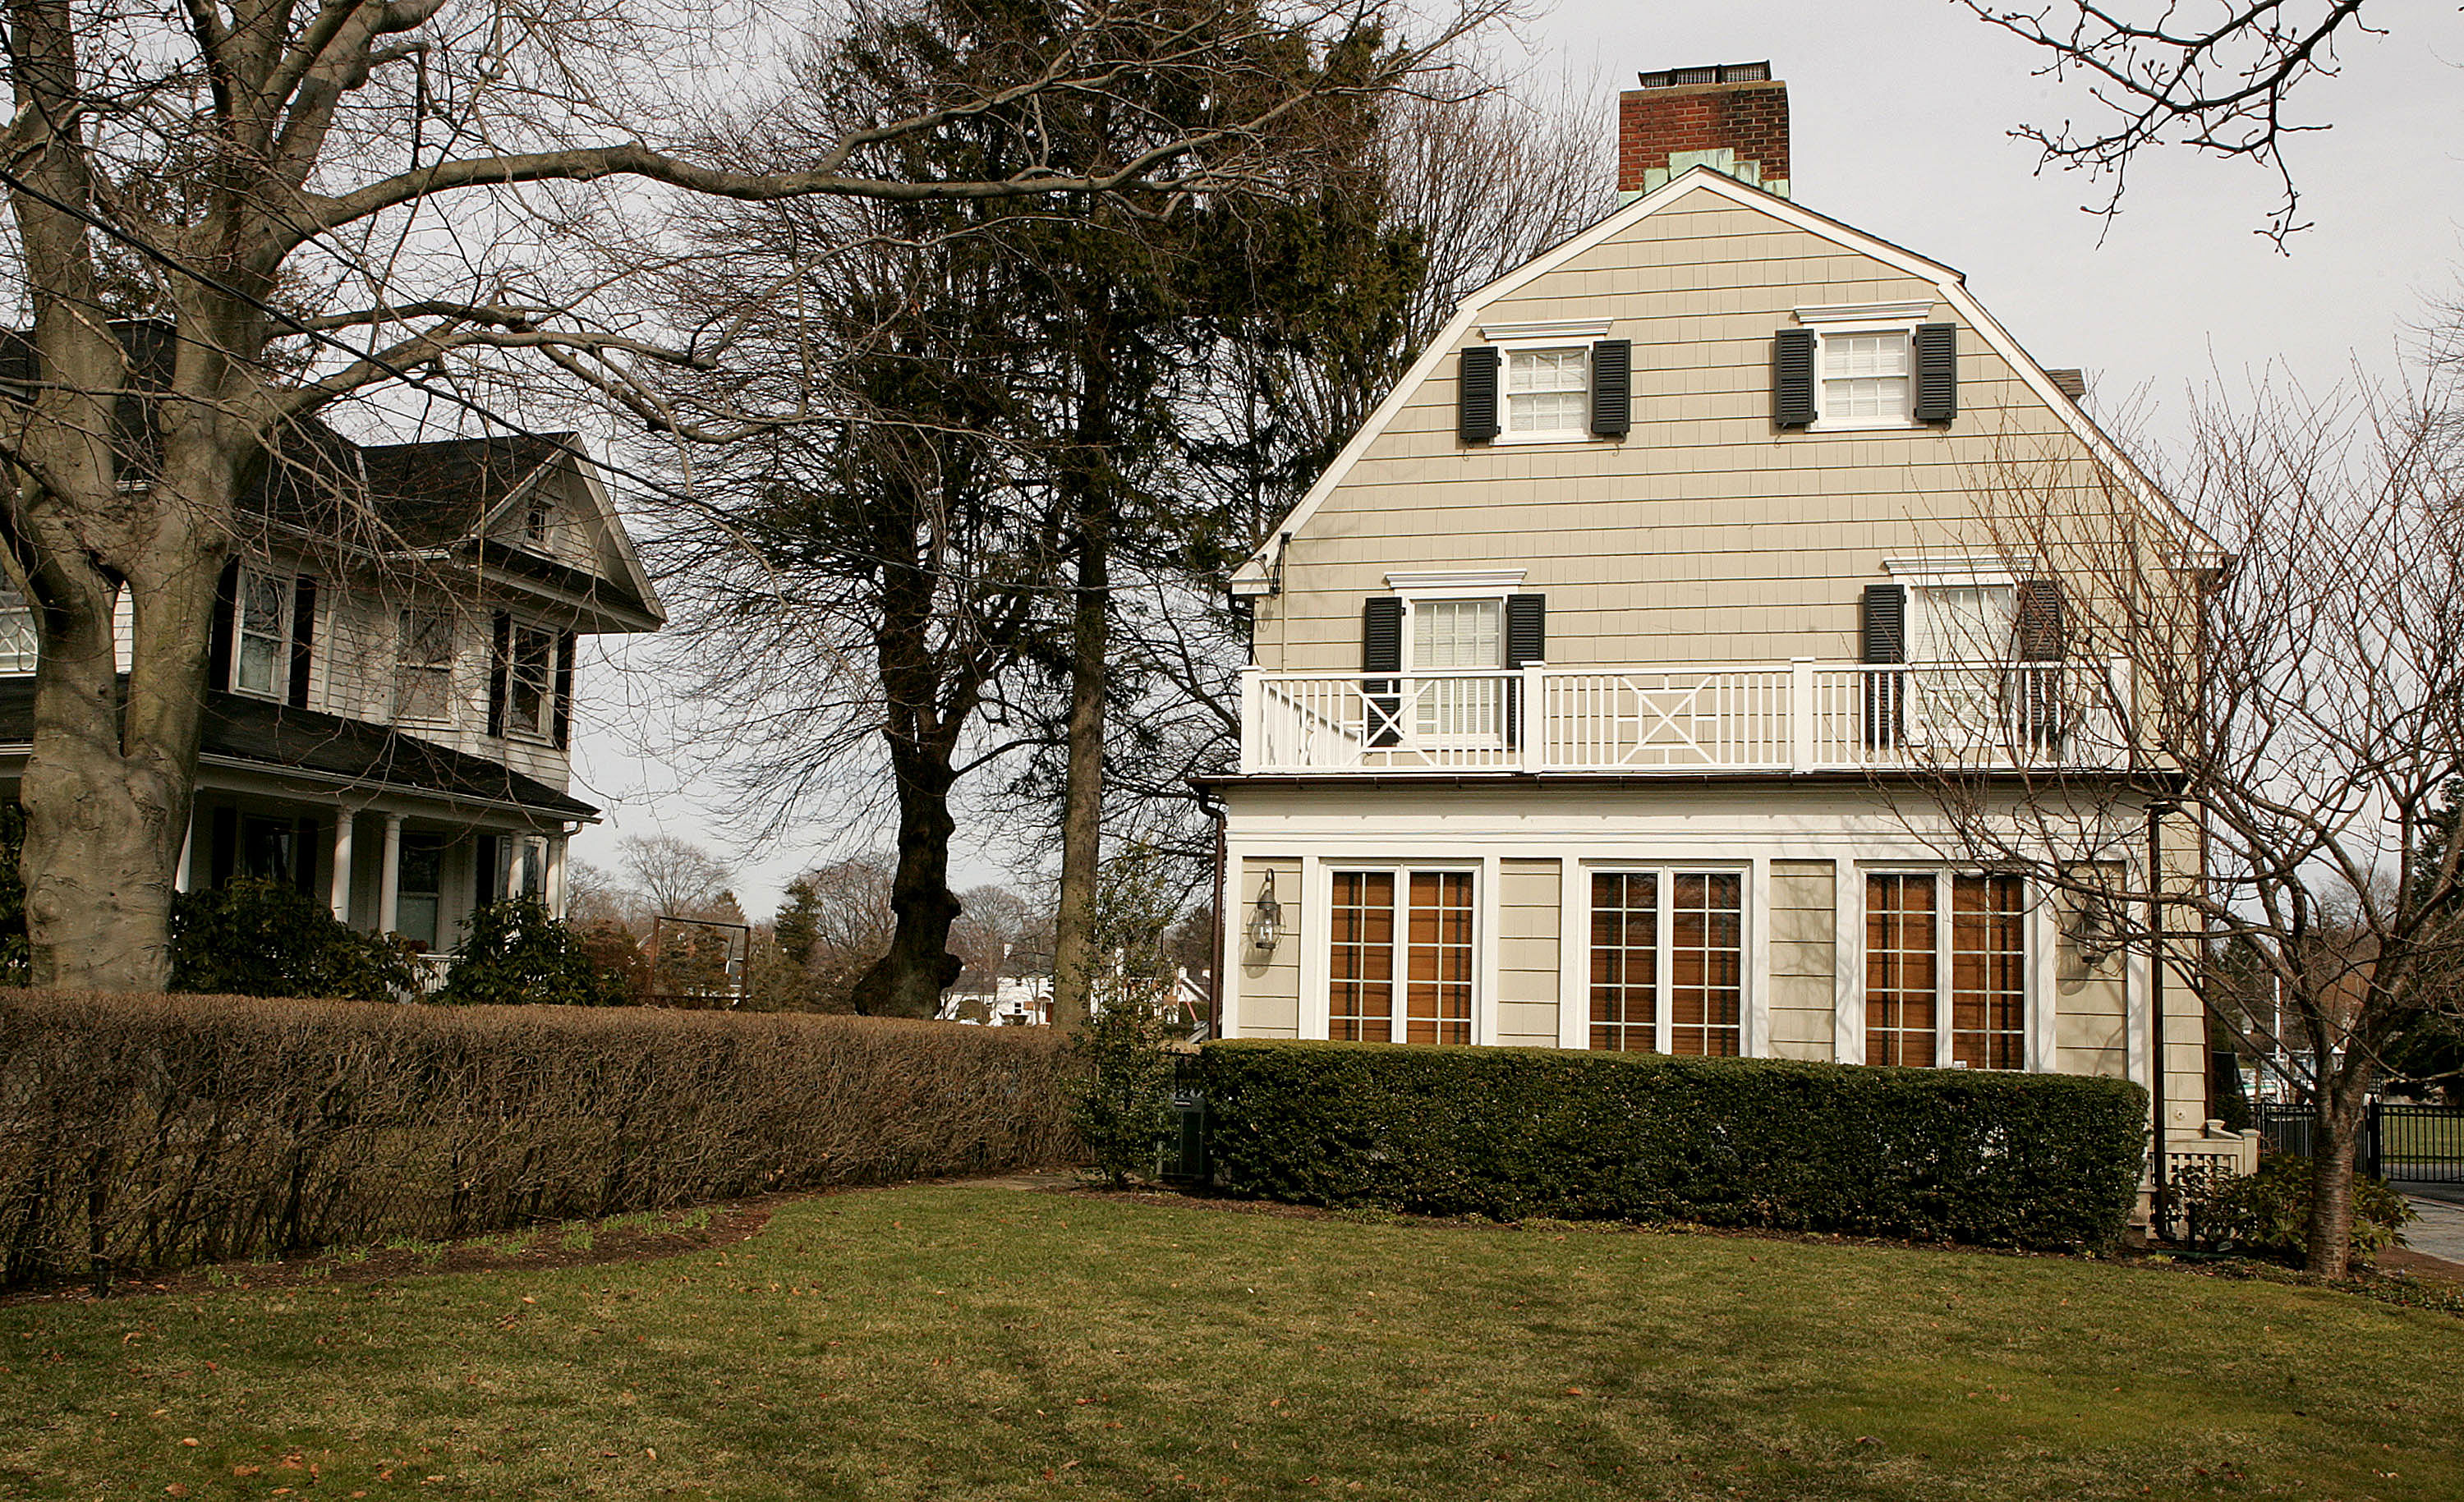 The amityville horror house is up for sale for Murder house for sale american horror story